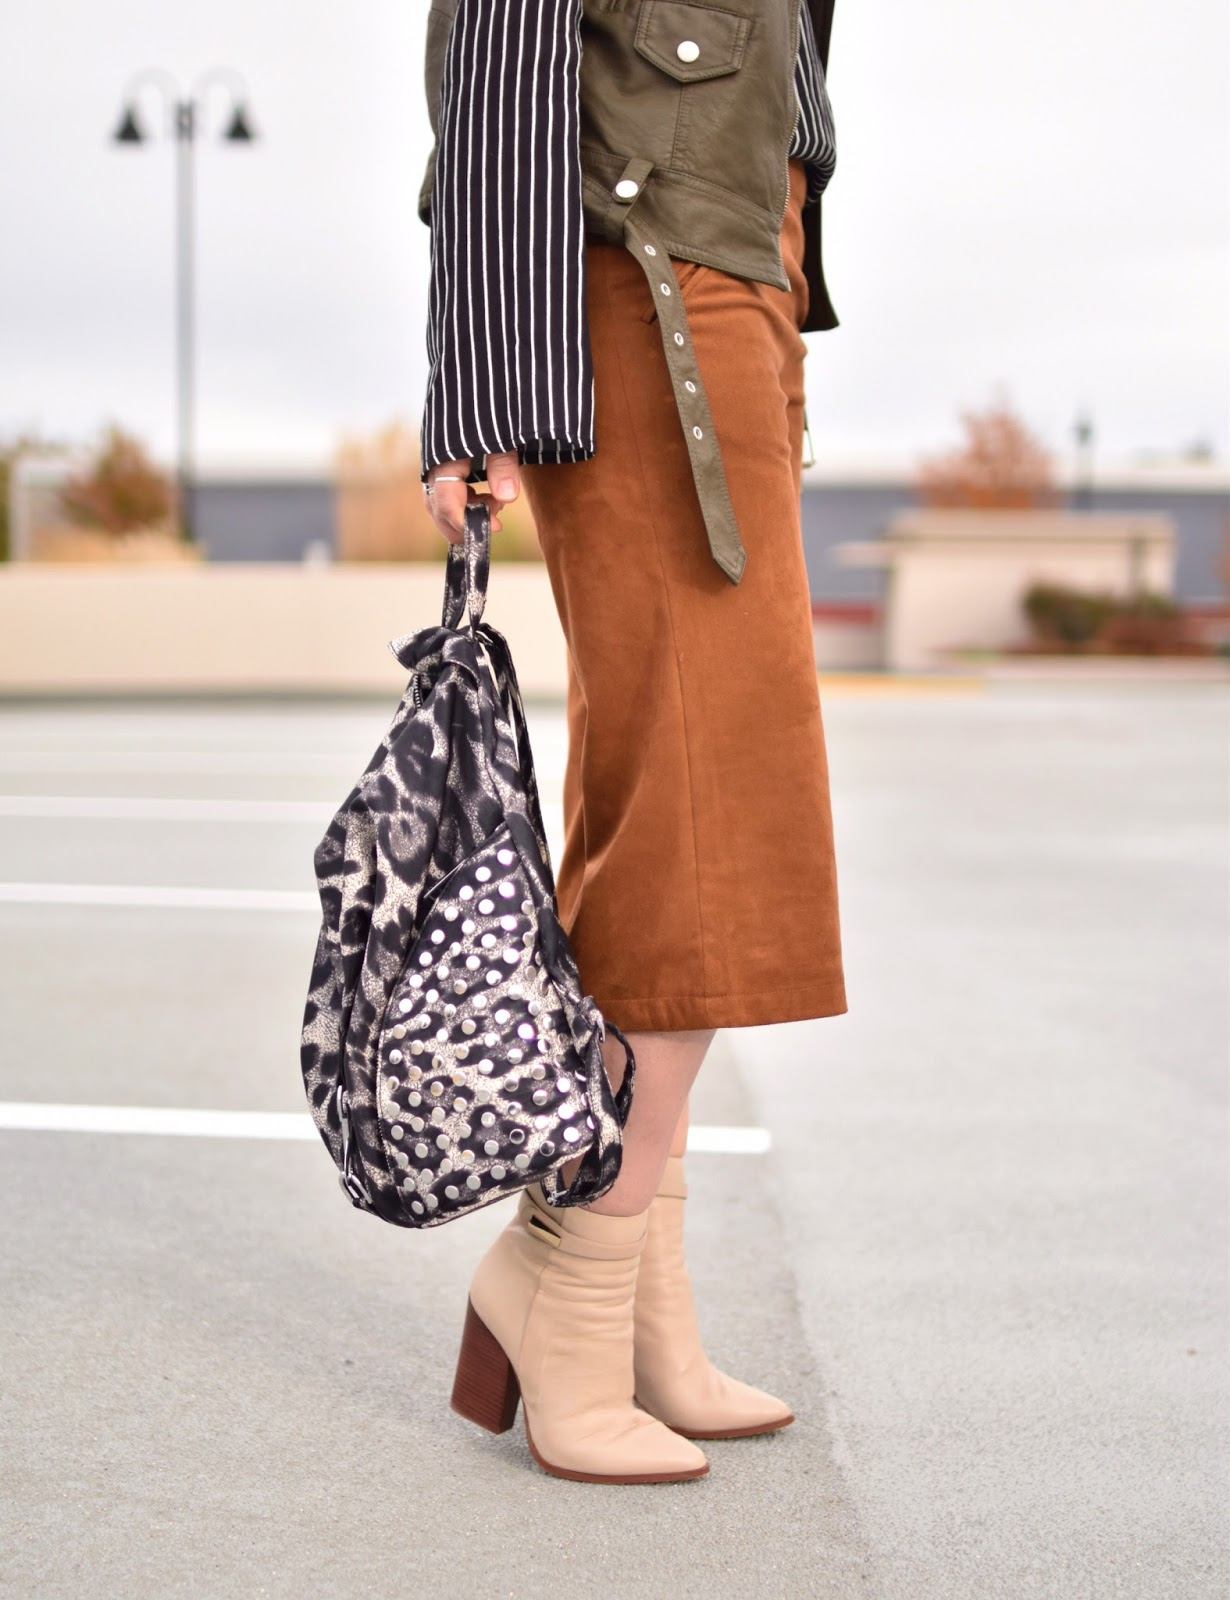 Outfit inspiration c/o Monika Faulkner - striped blouse, faux-suede culottes, moto vest, ivory booties, leopard-patterned backpack